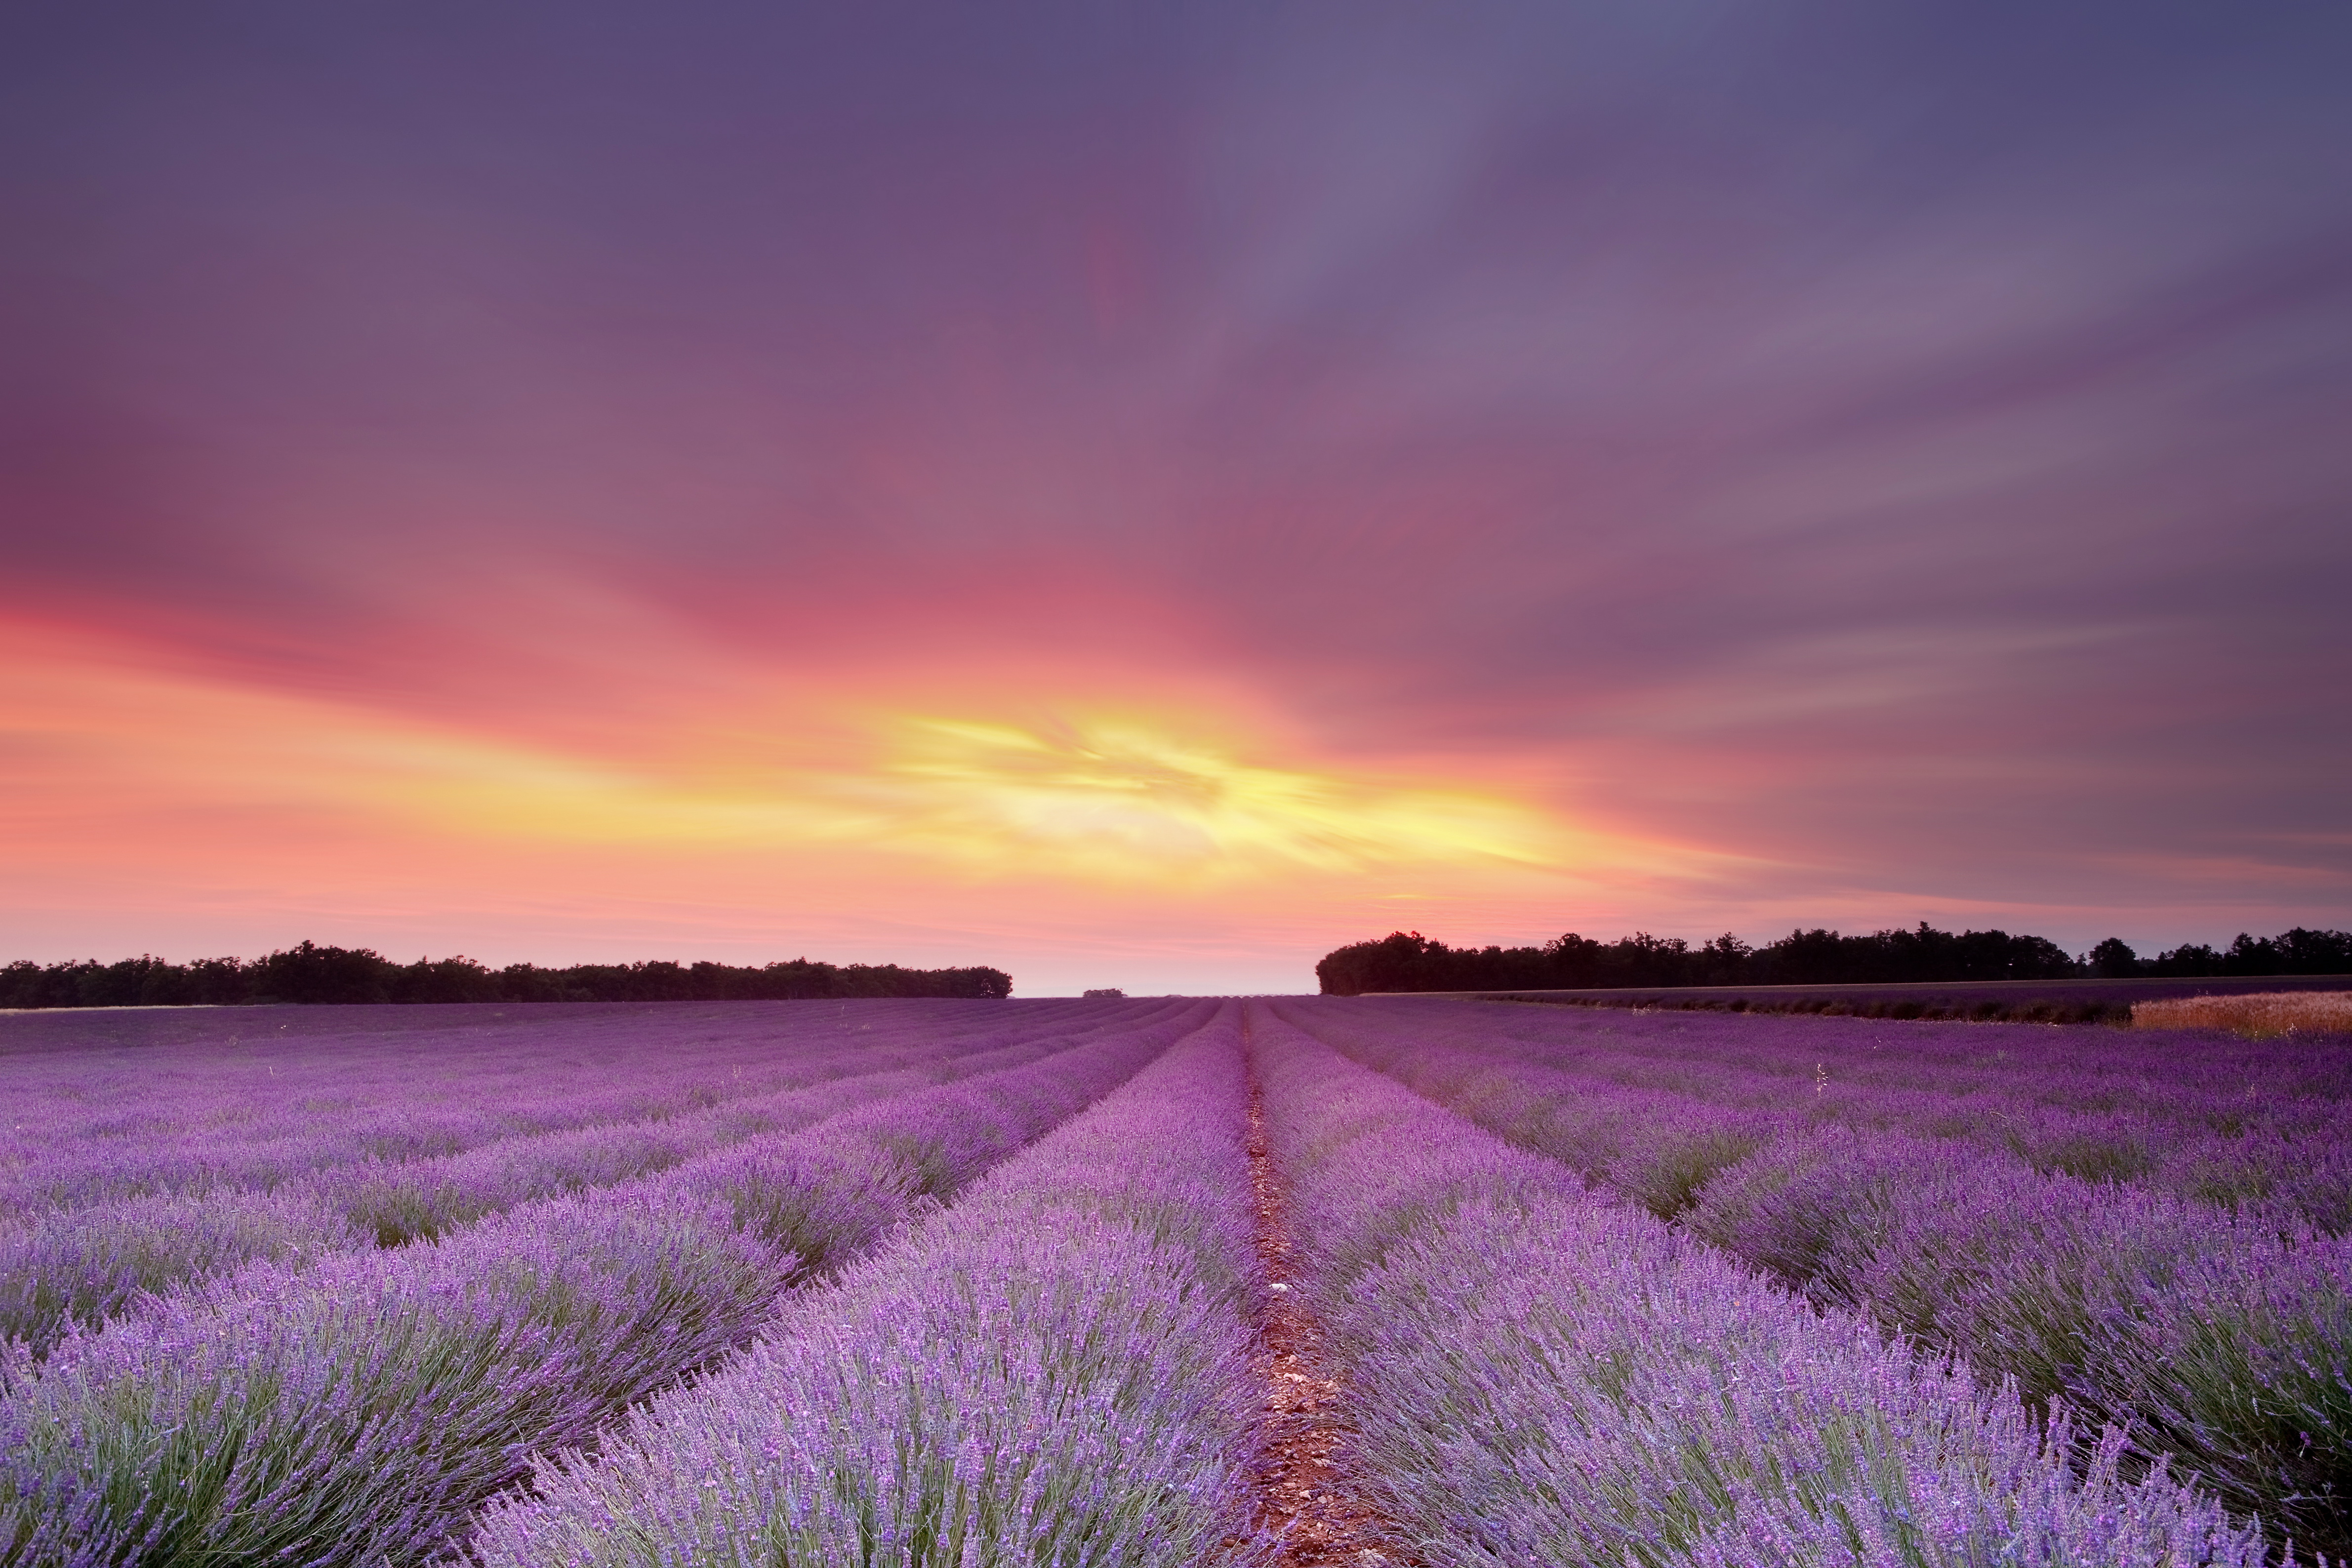 Lavandula Fields Sky Clouds Flowers Sunset Sunrise Wallpaper